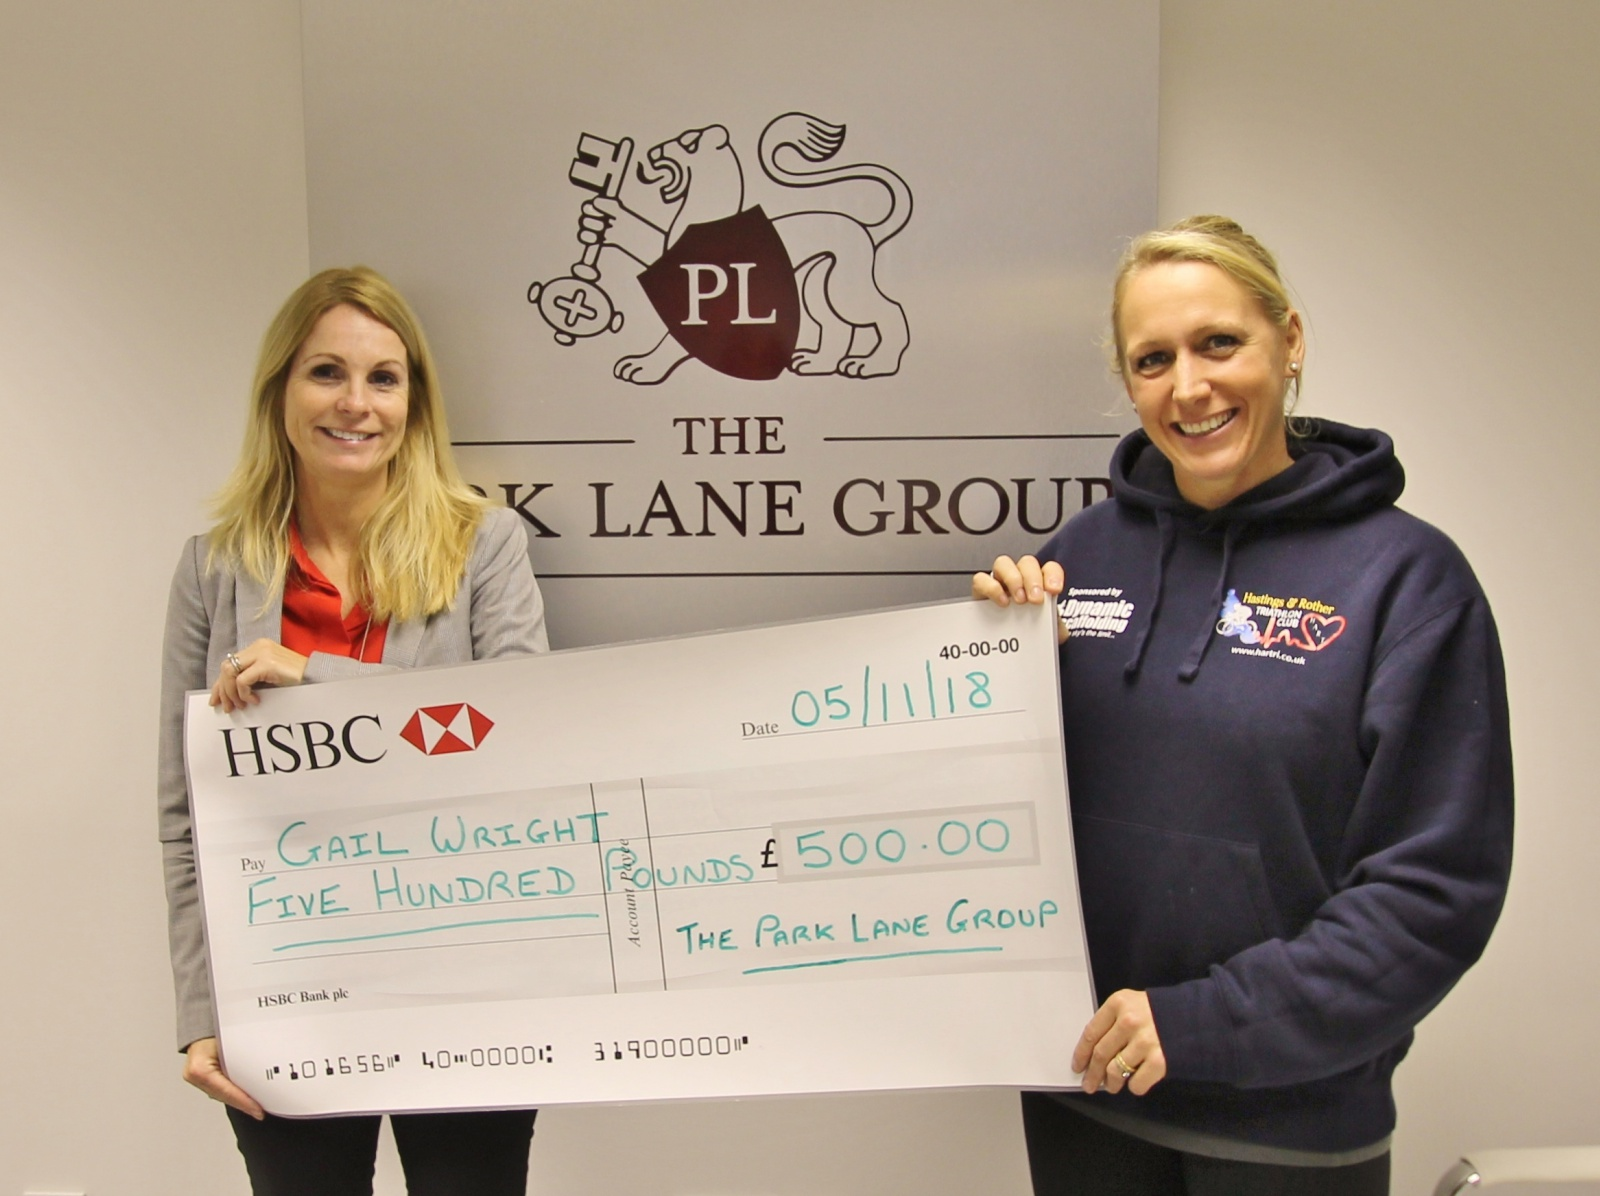 Gail Wright Athlete sponsorship by The Park Lane Group